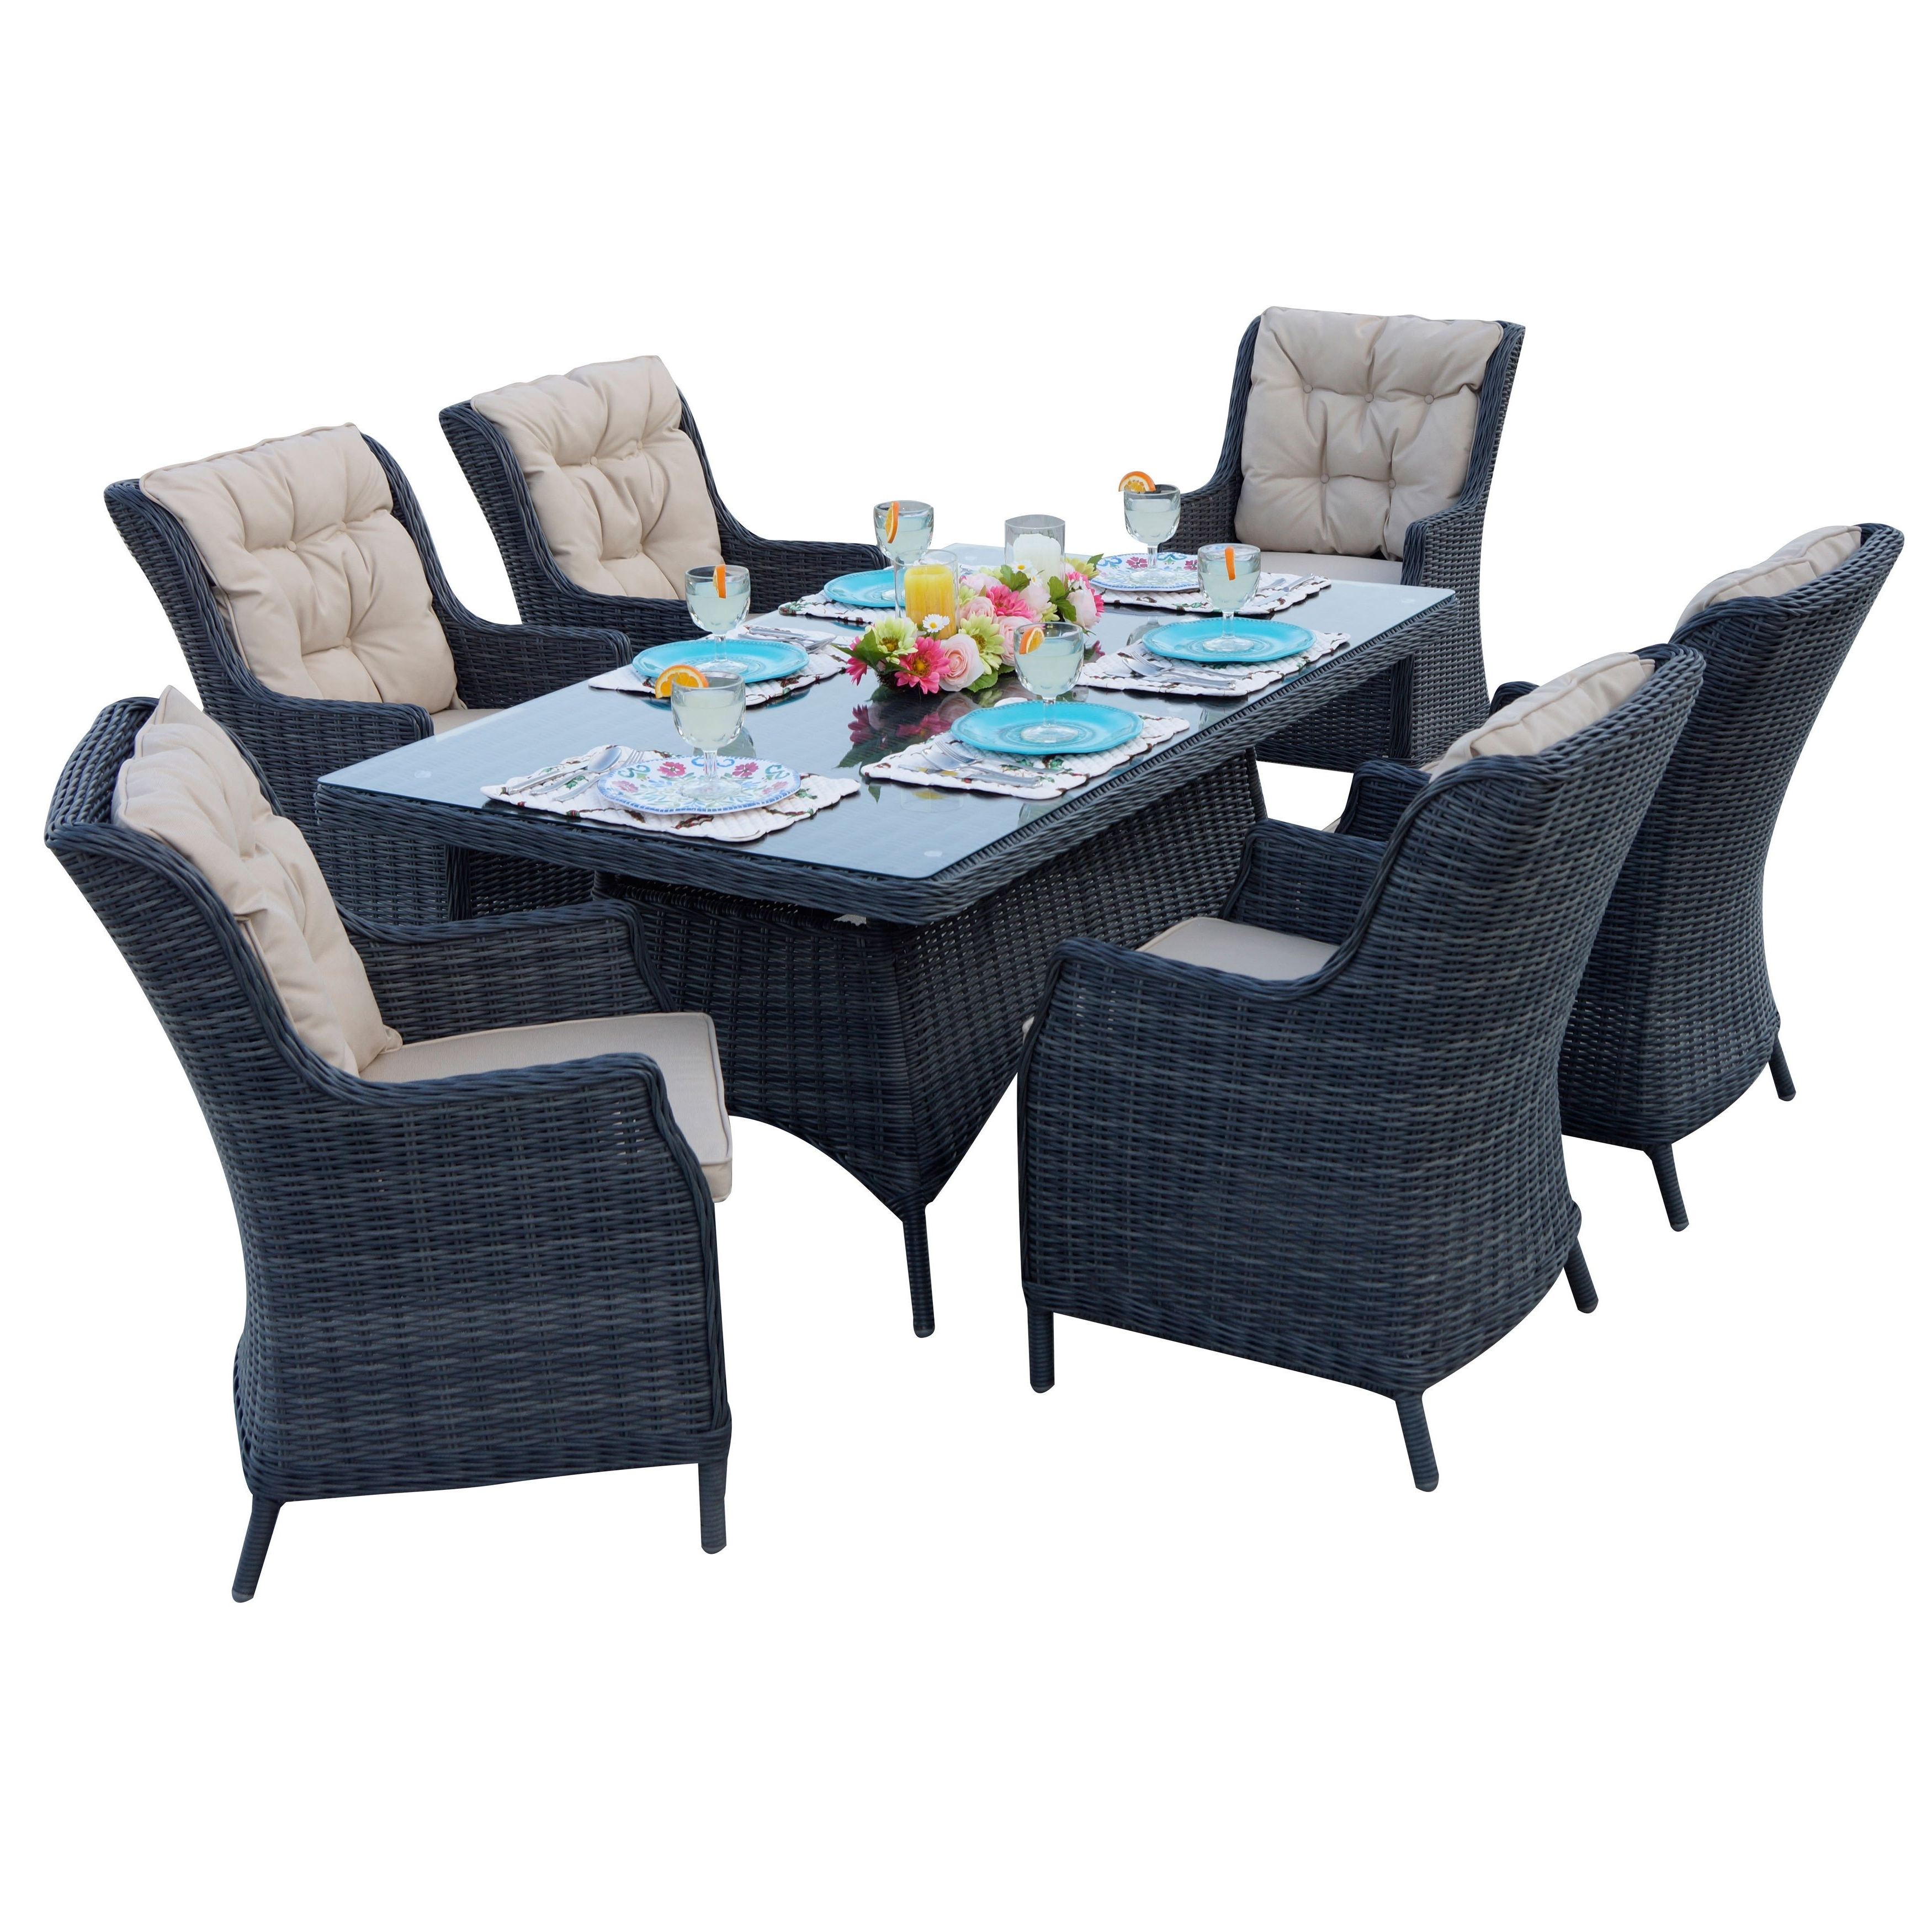 Valencia 72 Inch 6 Piece Dining Sets Inside Well Liked Darlee Valencia Black Resin Wicker Dining Set (View 6 of 25)